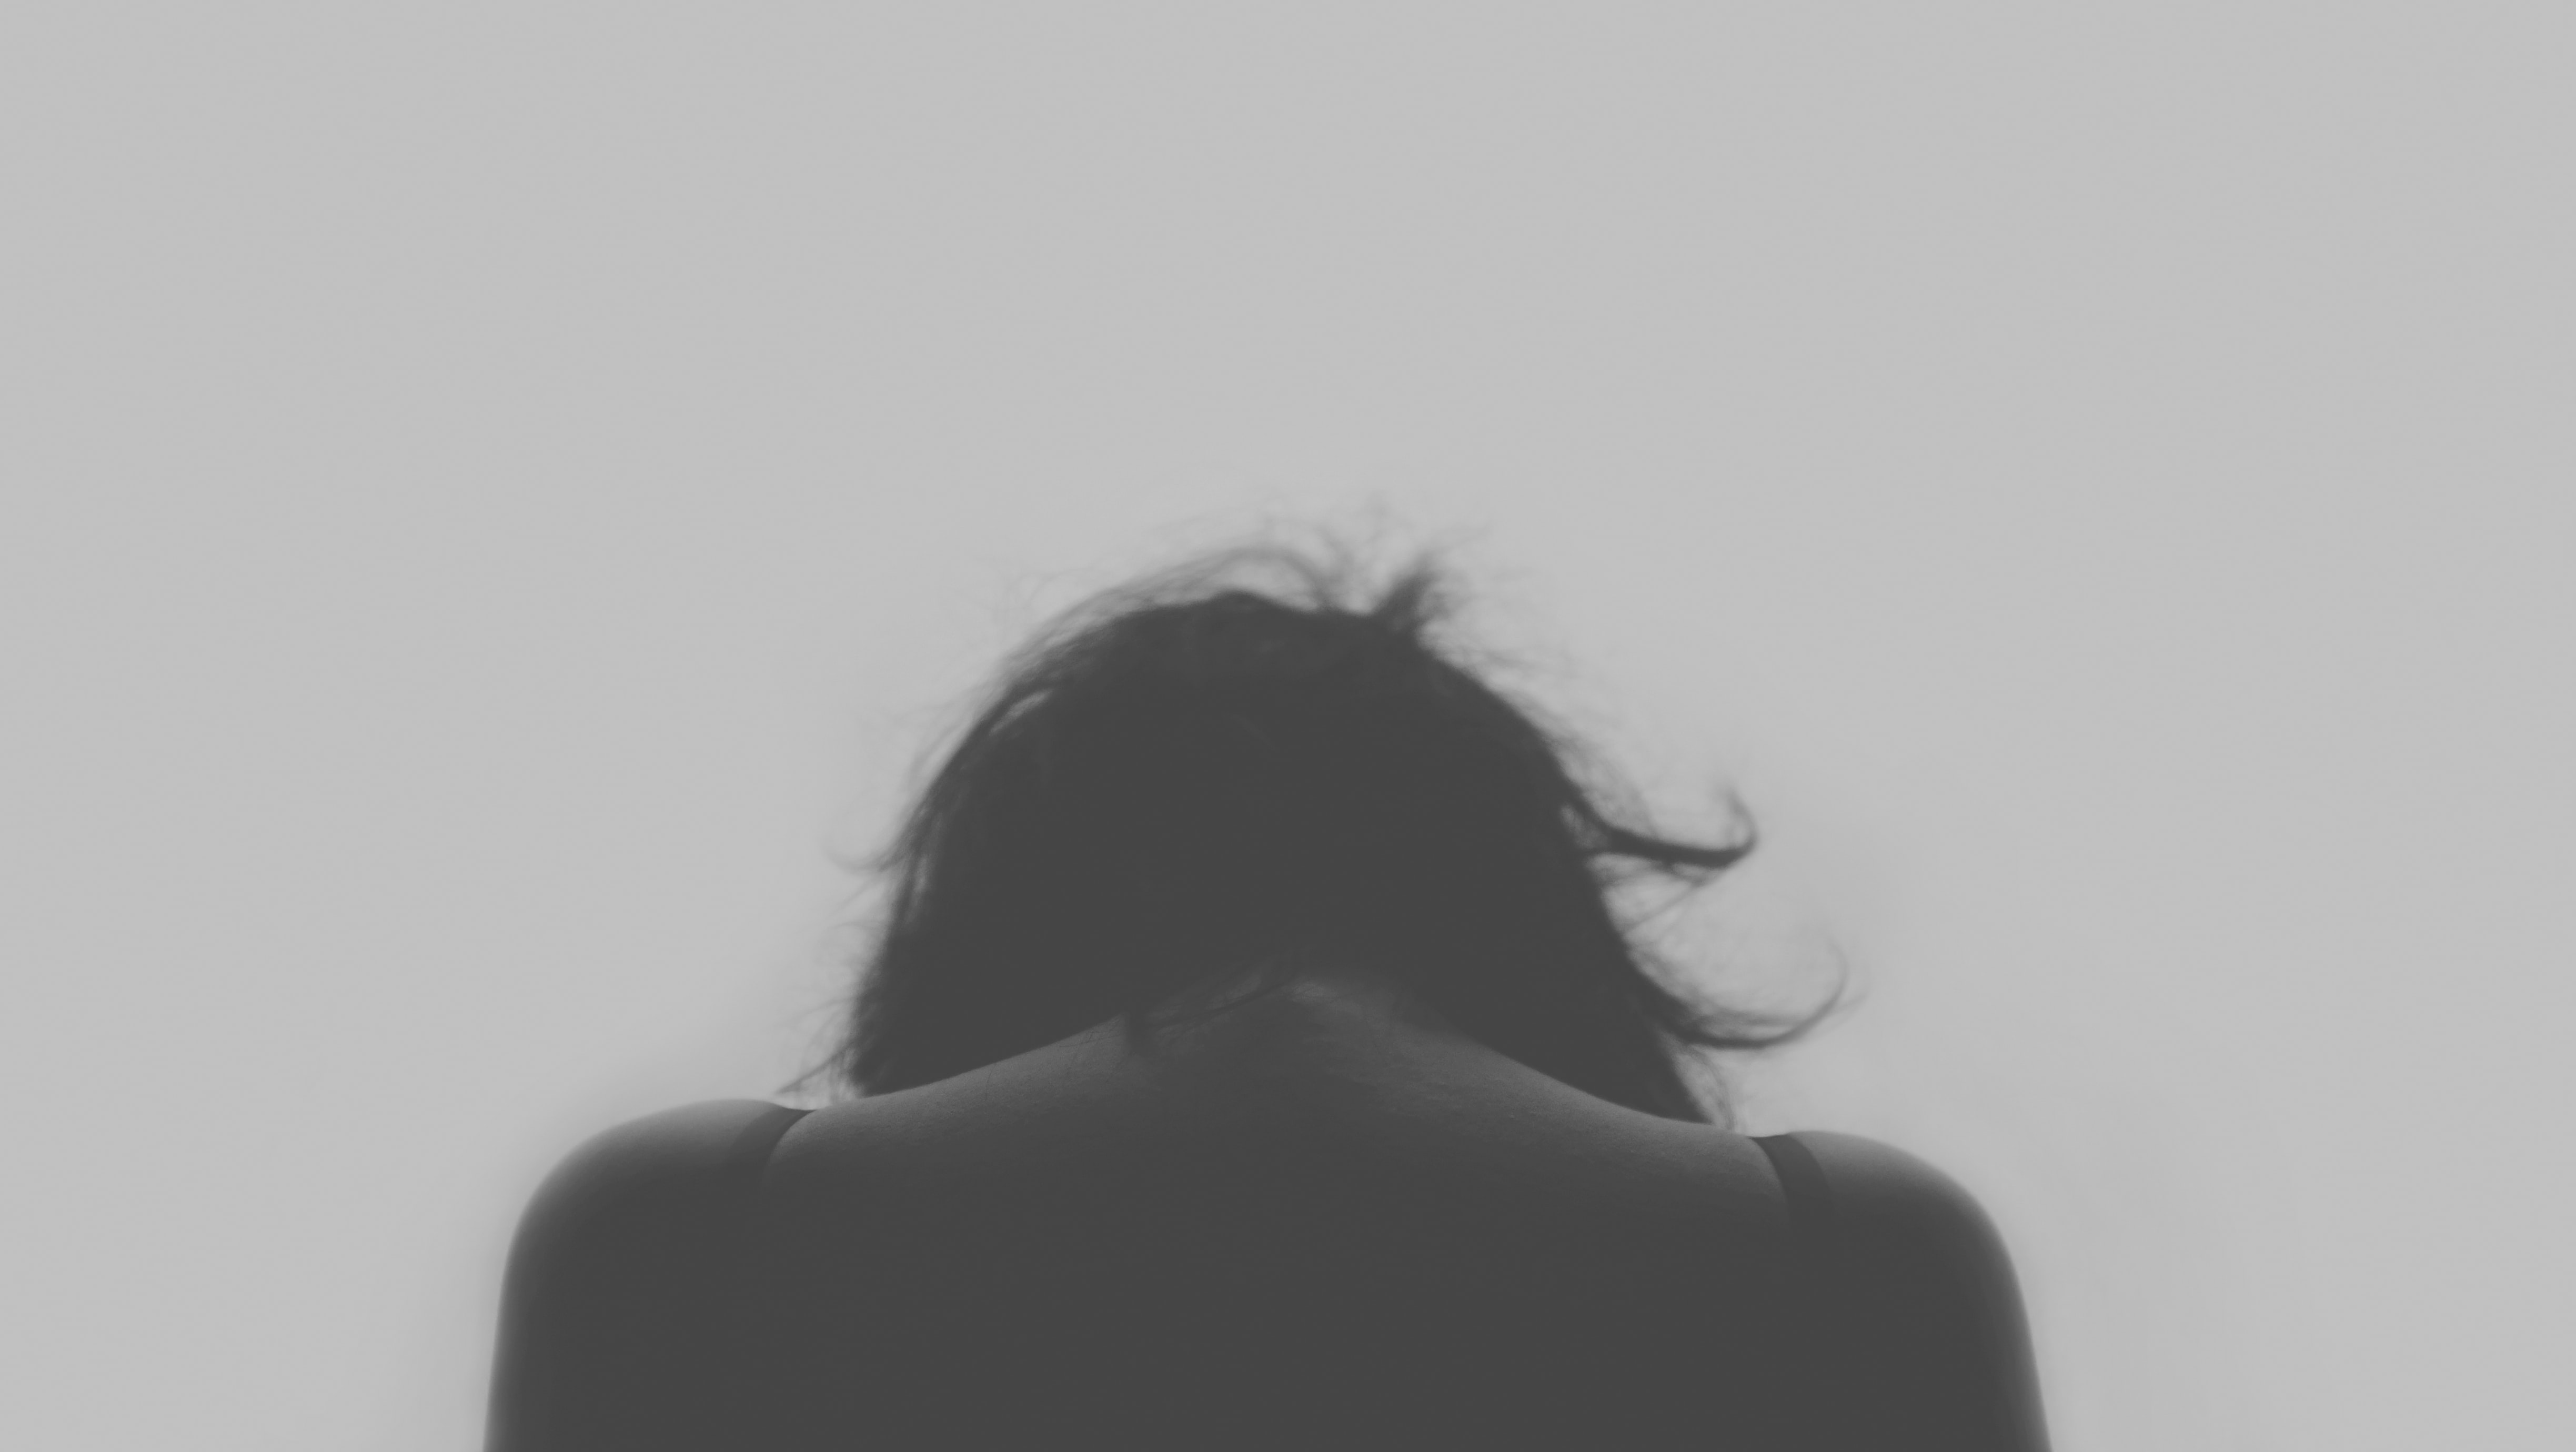 A black and white rear shot of the back of a woman's head and back, with her head bowed down in sadness